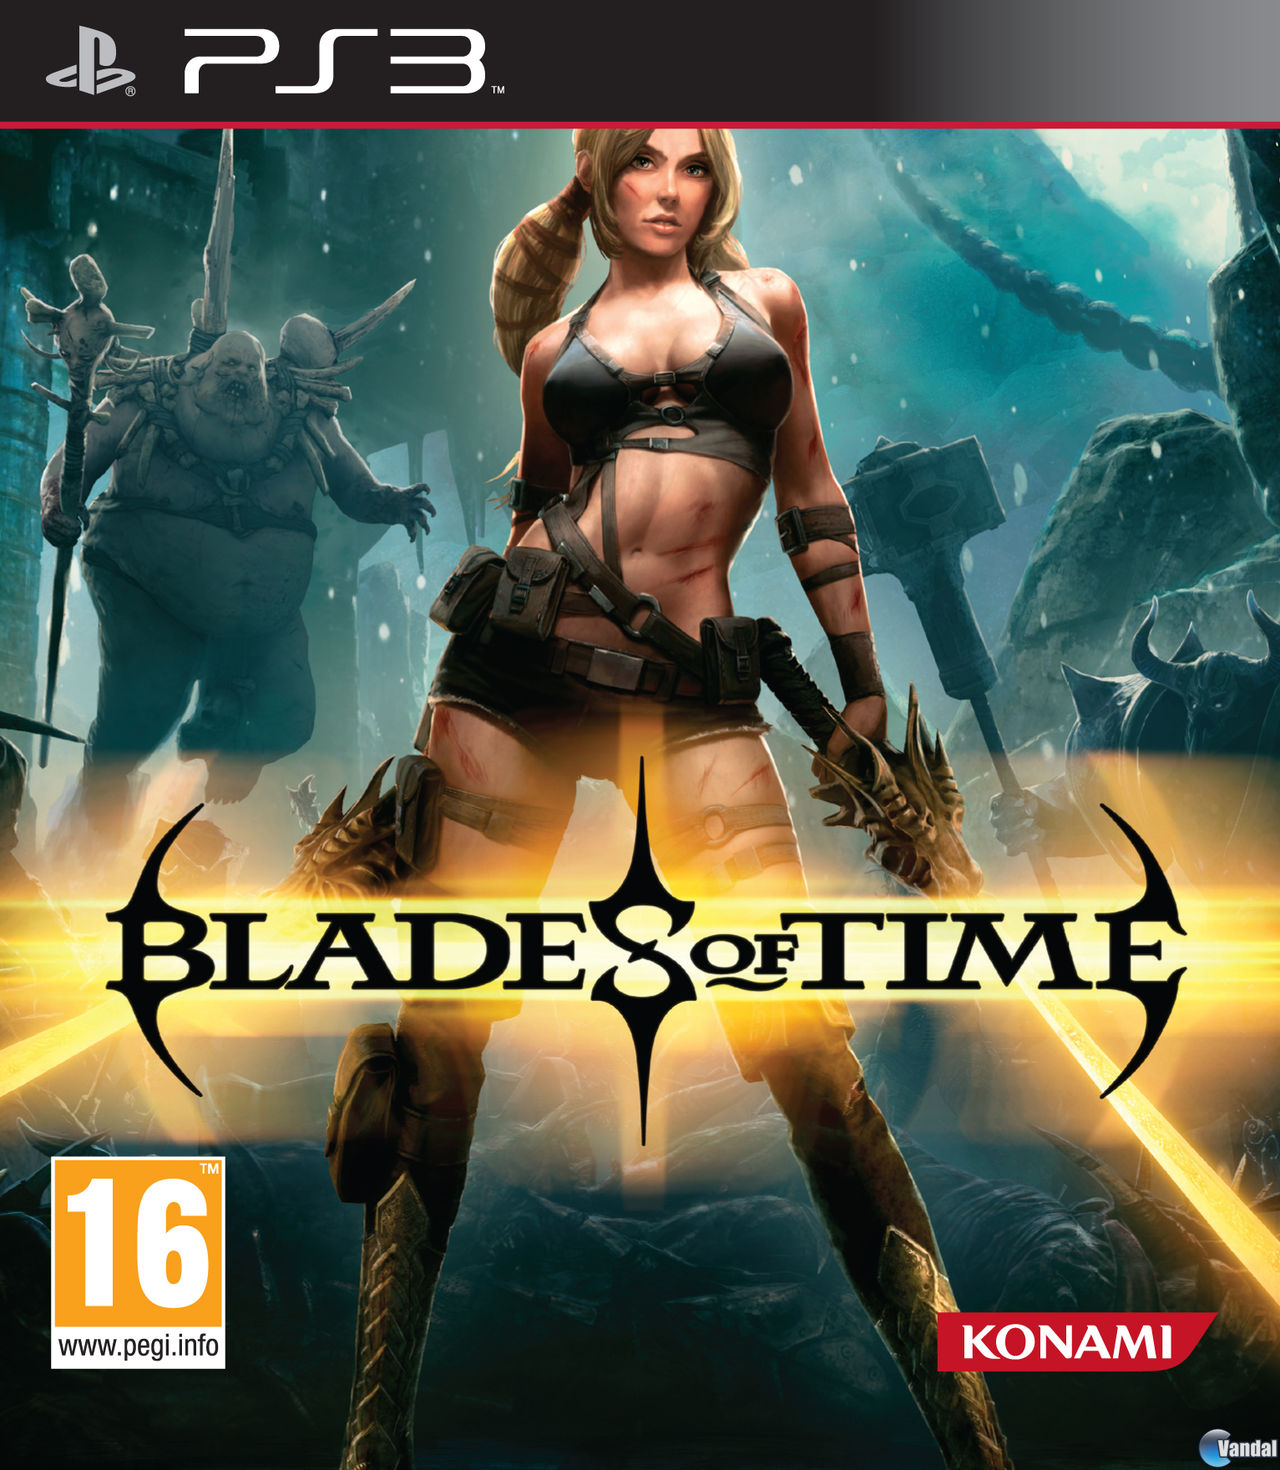 Blades of Time Xbox Ps3 Ps4 Pc Xbox360 XboxOne jtag rgh dvd iso Wii Nintendo Mac Linux